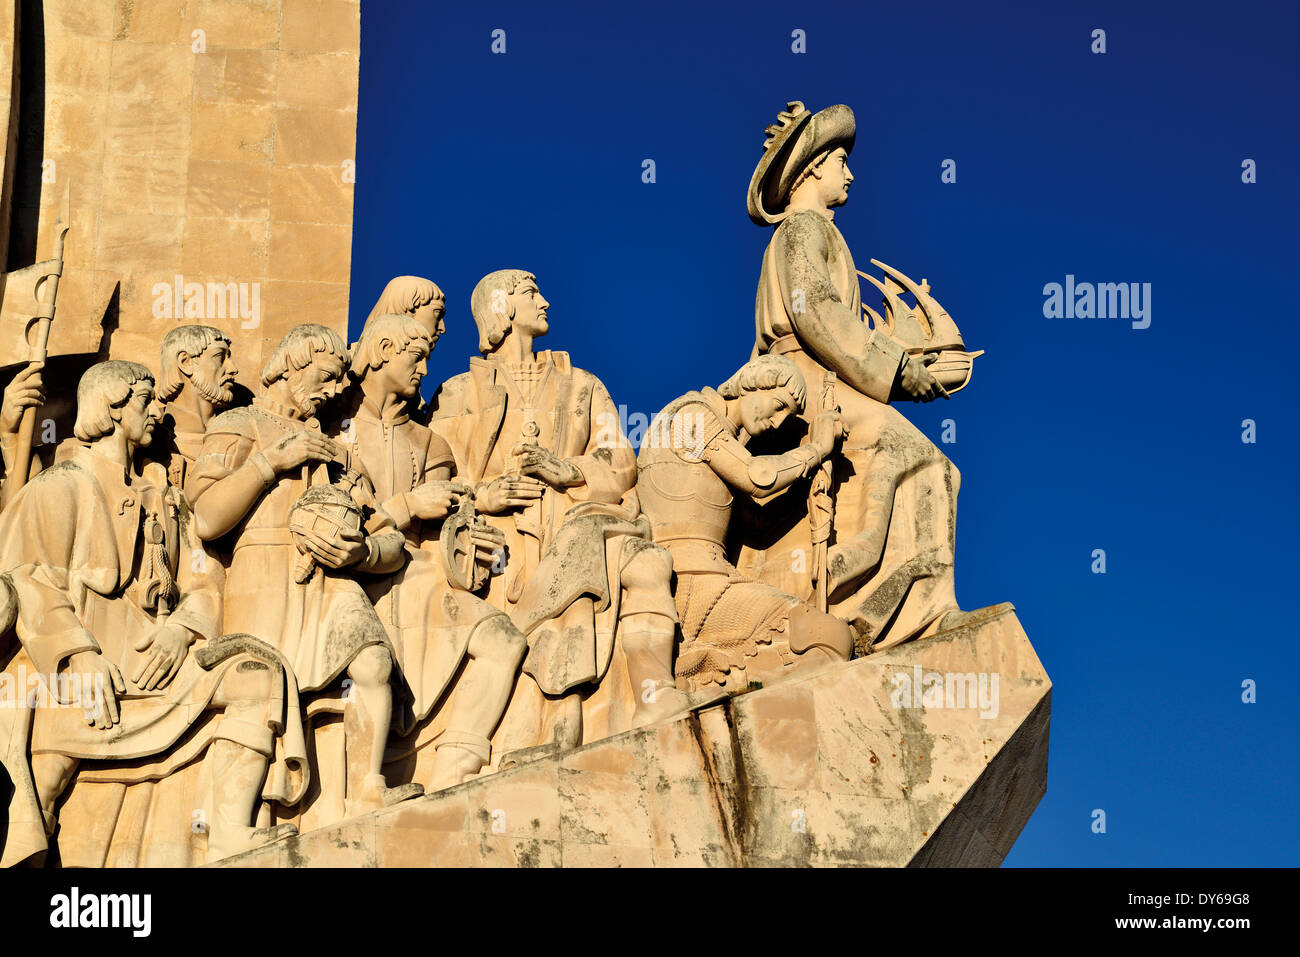 Portugal, Lisbon: Detail of the Monument of the Discoveries - Stock Image